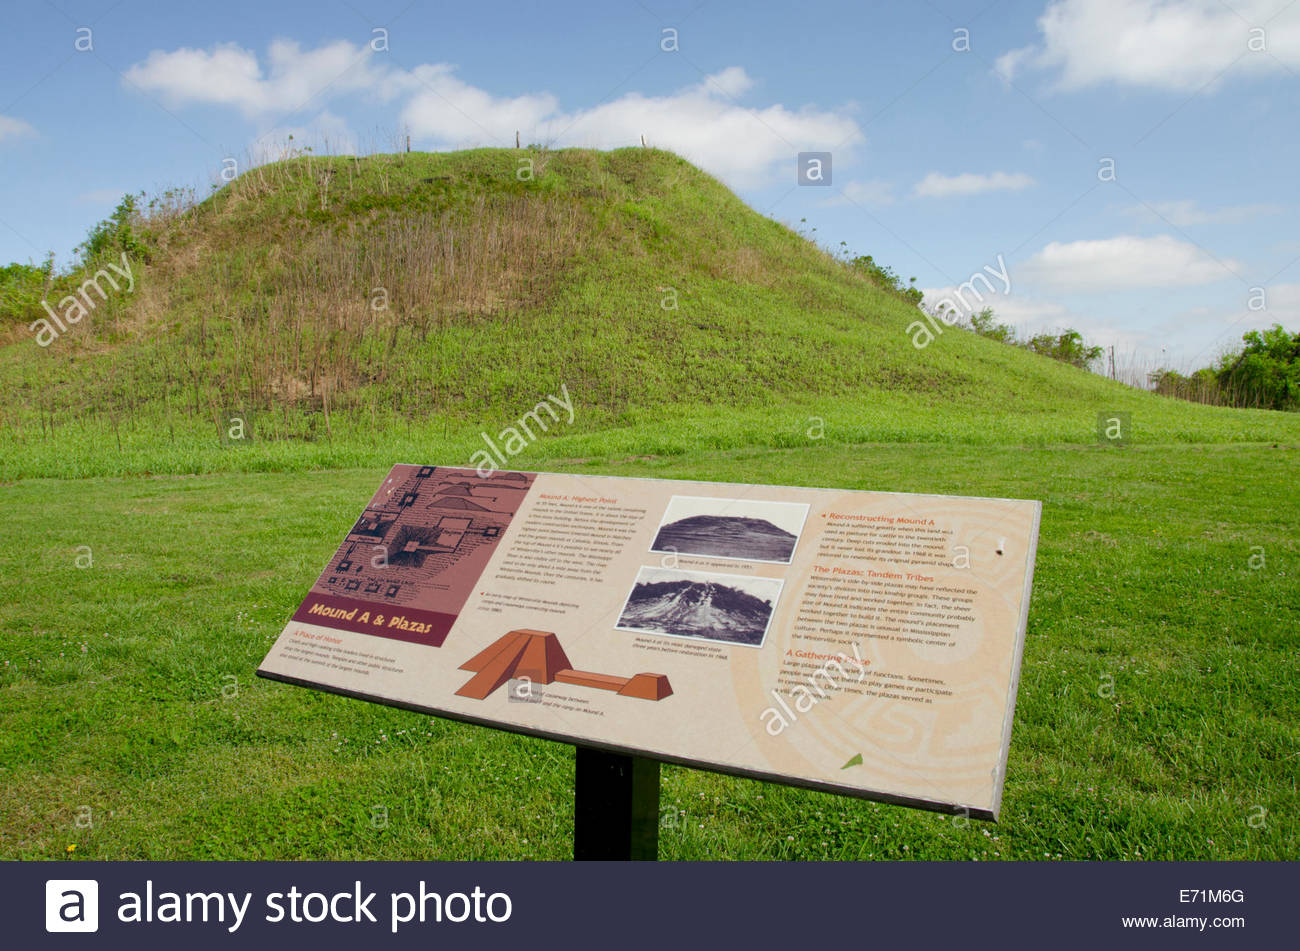 usa-mississippi-greenville-winterville-mounds-a-native-american-mound-E71M6G